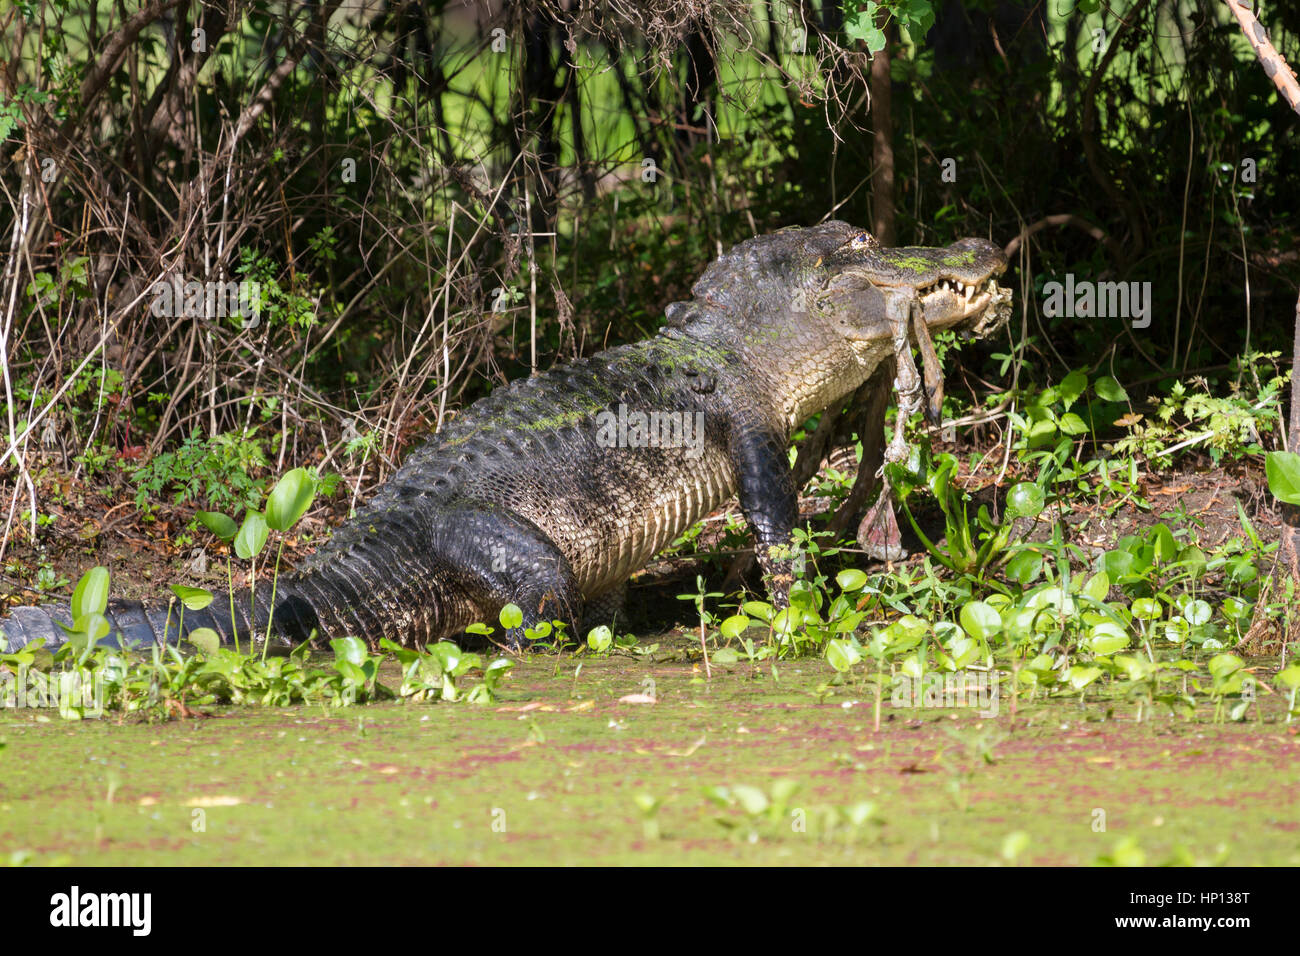 alligator at Brazos Bend State Park eating a pray - Stock Image